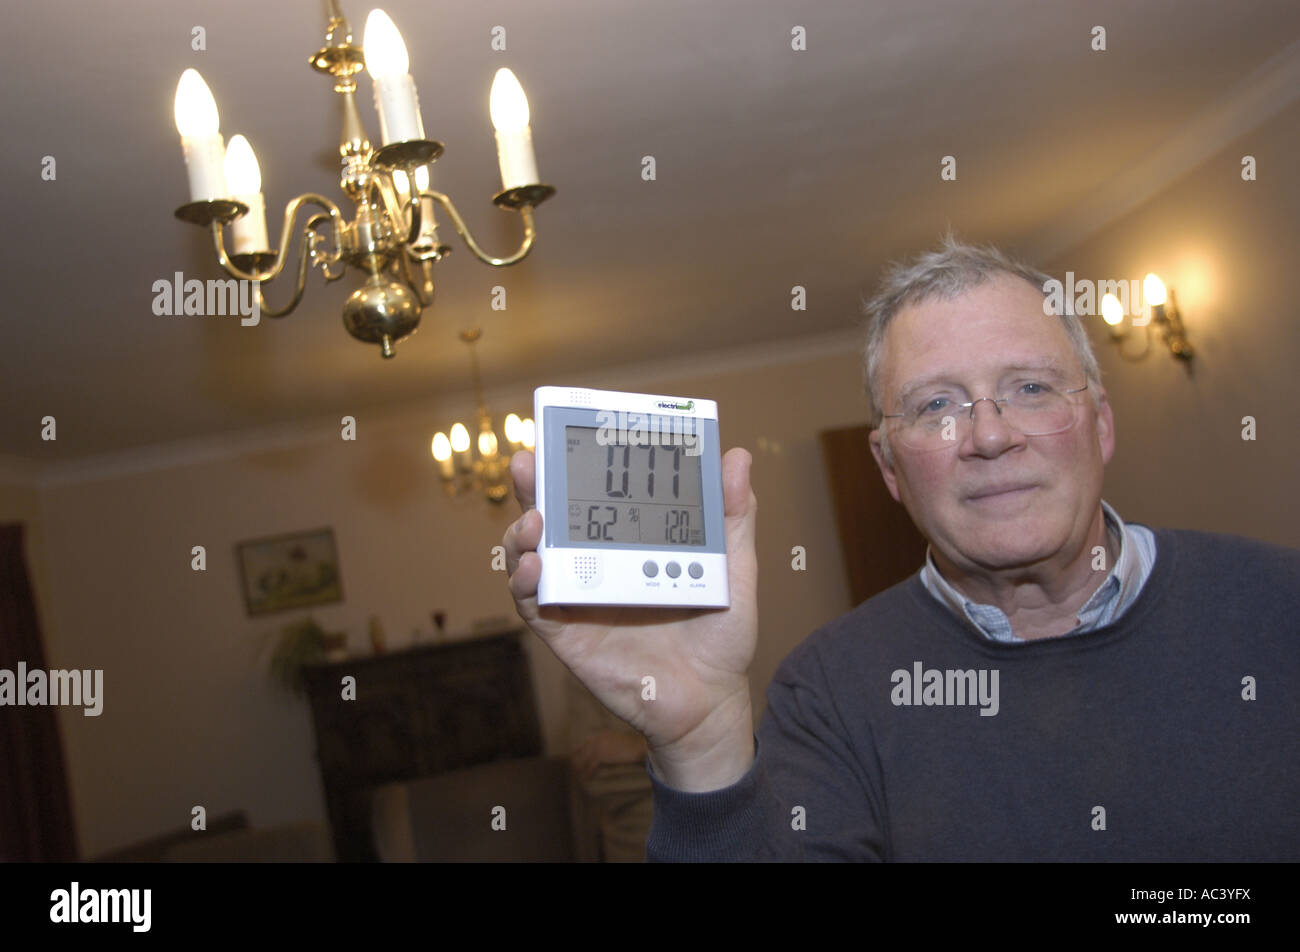 A smart meter shows the amount of energy used in one room illuminated by tungsten light bulbs - 3/4 of a kilowatt - Stock Image